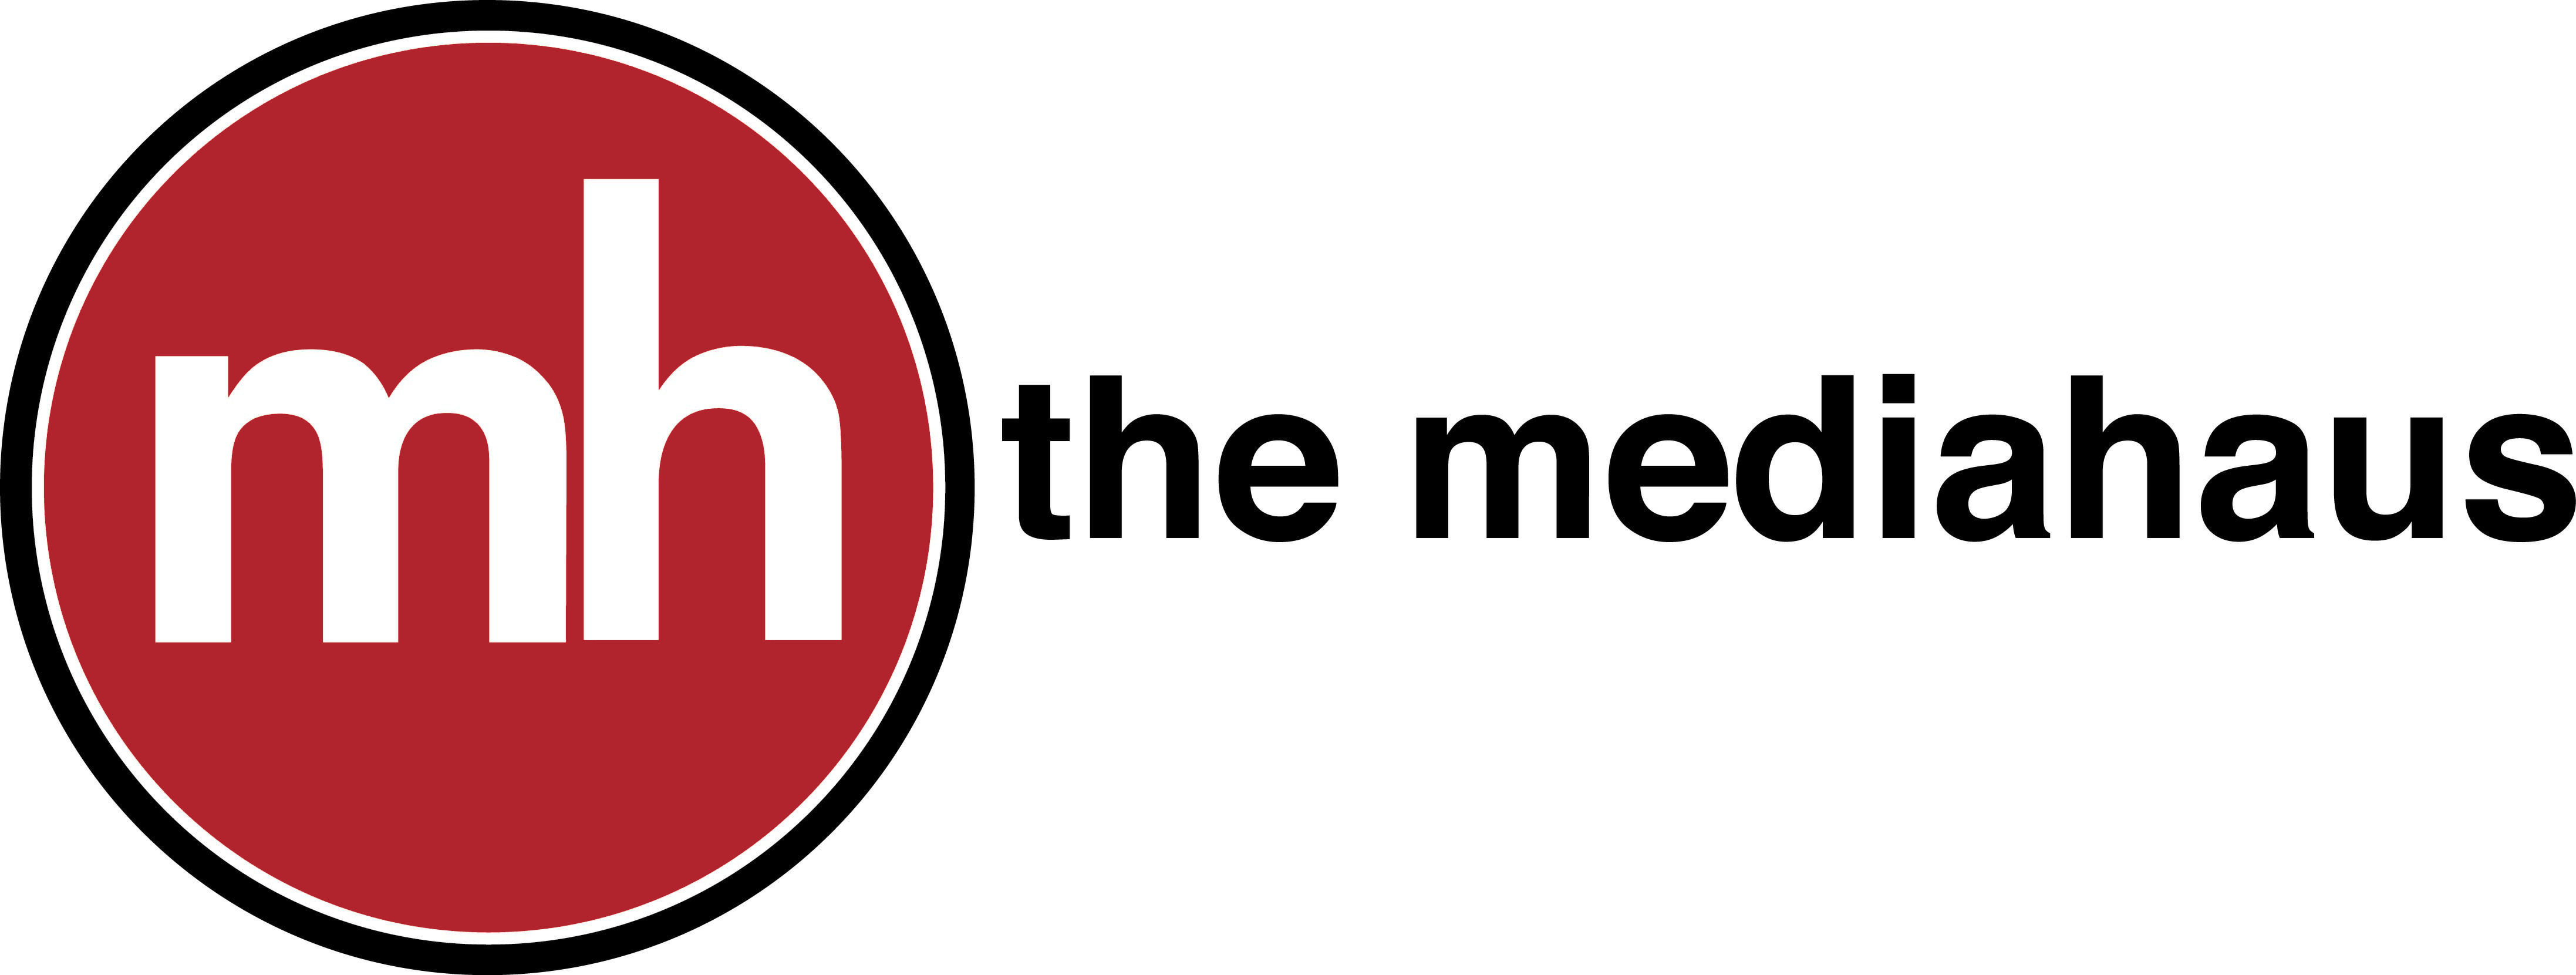 The MediaHaus